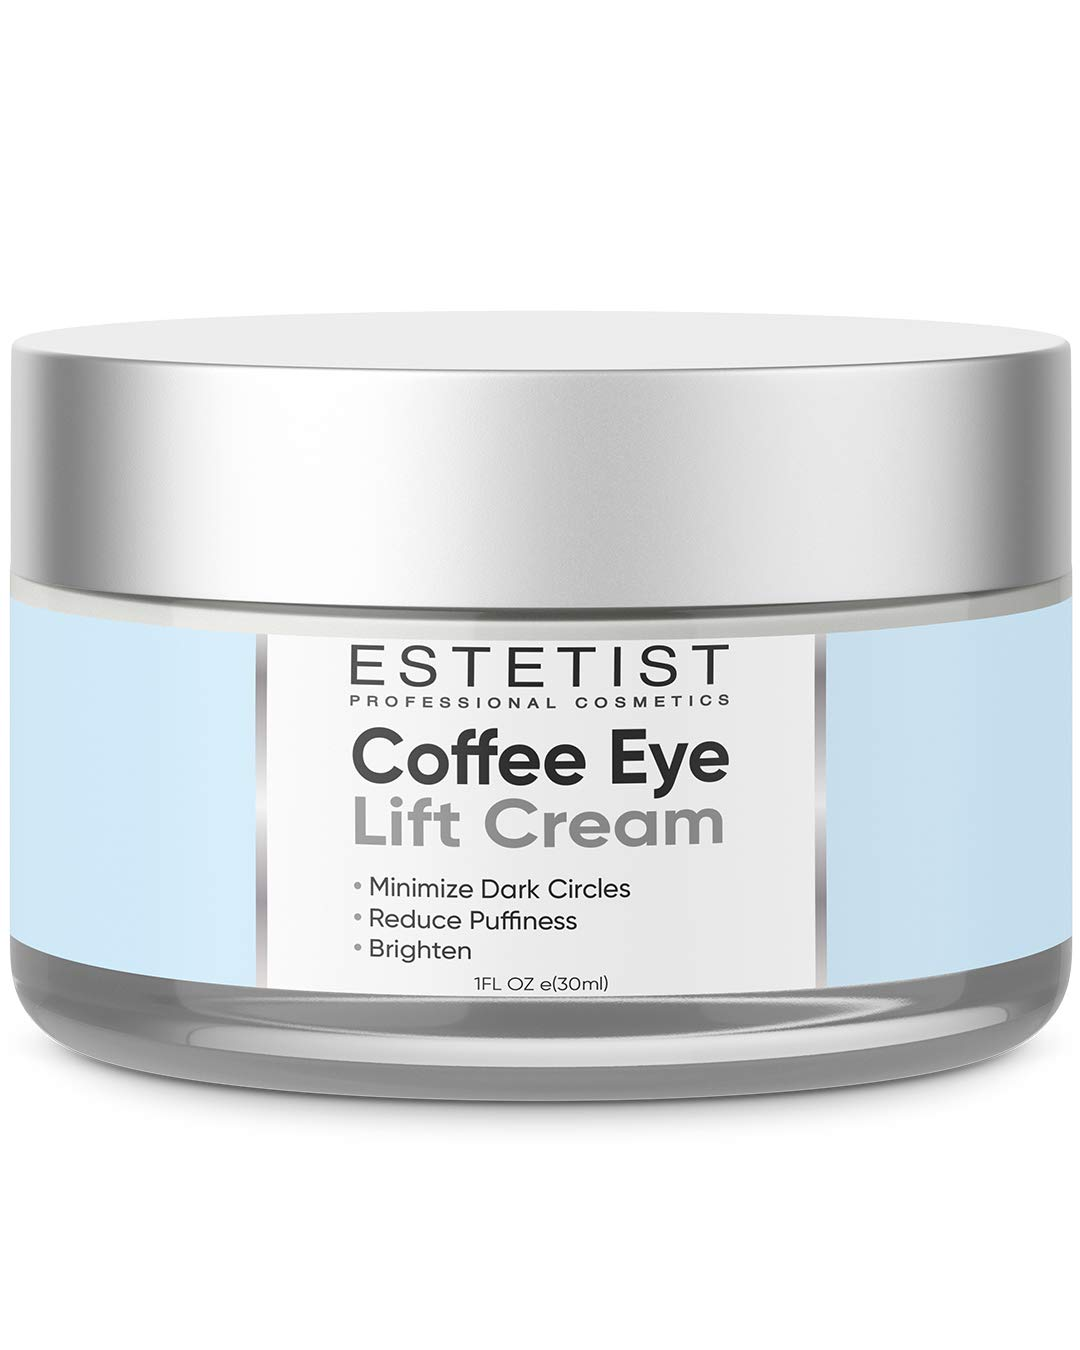 Caffeine Infused Coffee Eye Lift Cream - Reduces Puffiness, Brightens Dark Circles, Firms Under Eye Bags - Anti Aging, Wrinkle Fighting Skin Treatment